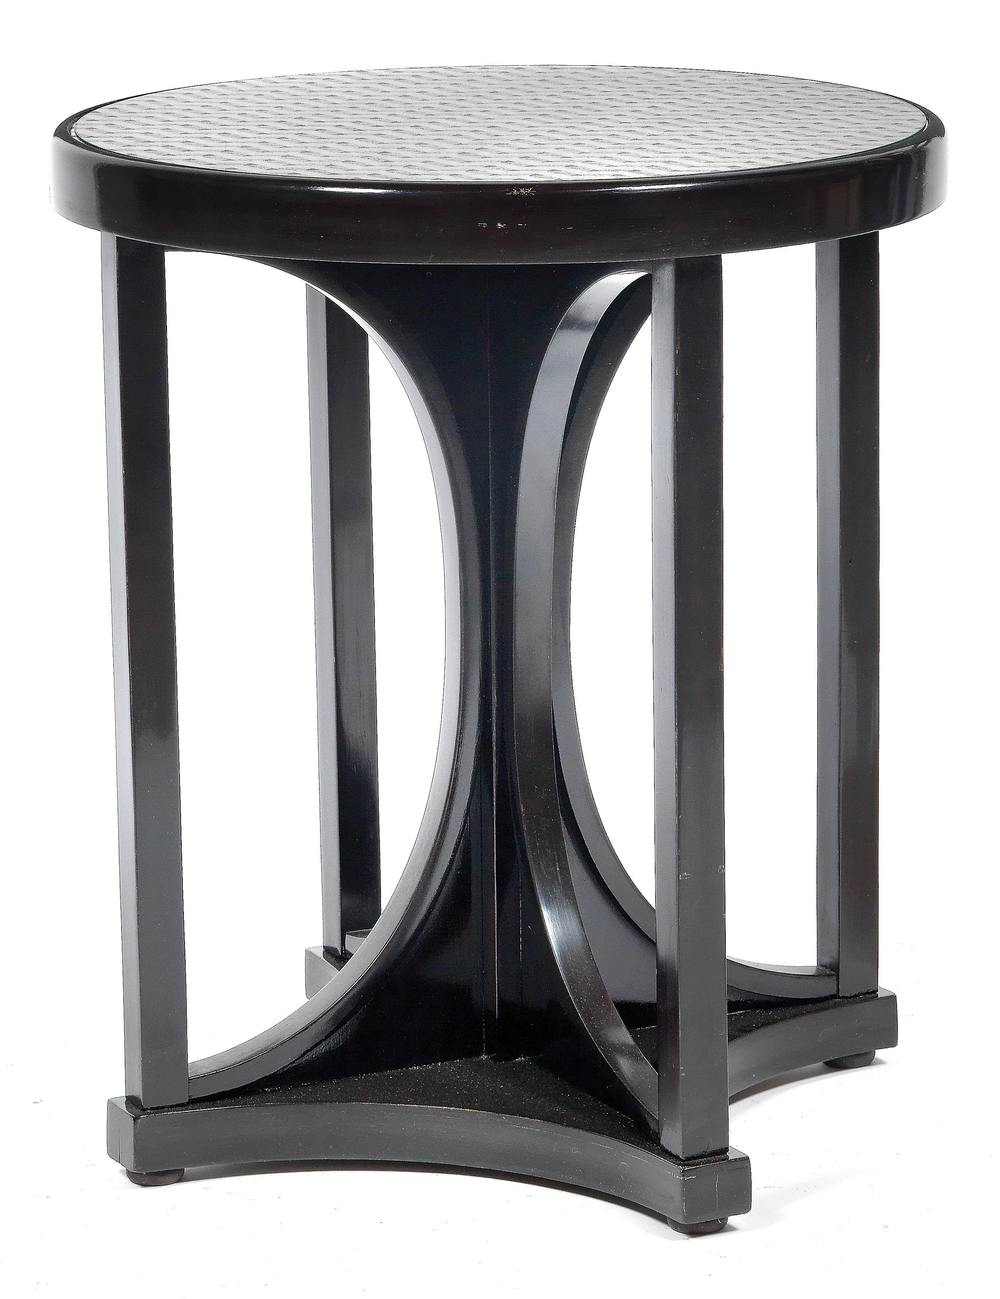 Josef Hoffmann (1870-1956) An Ebonised Occasional Table, designed, c.1910, Dorotheum Vienna